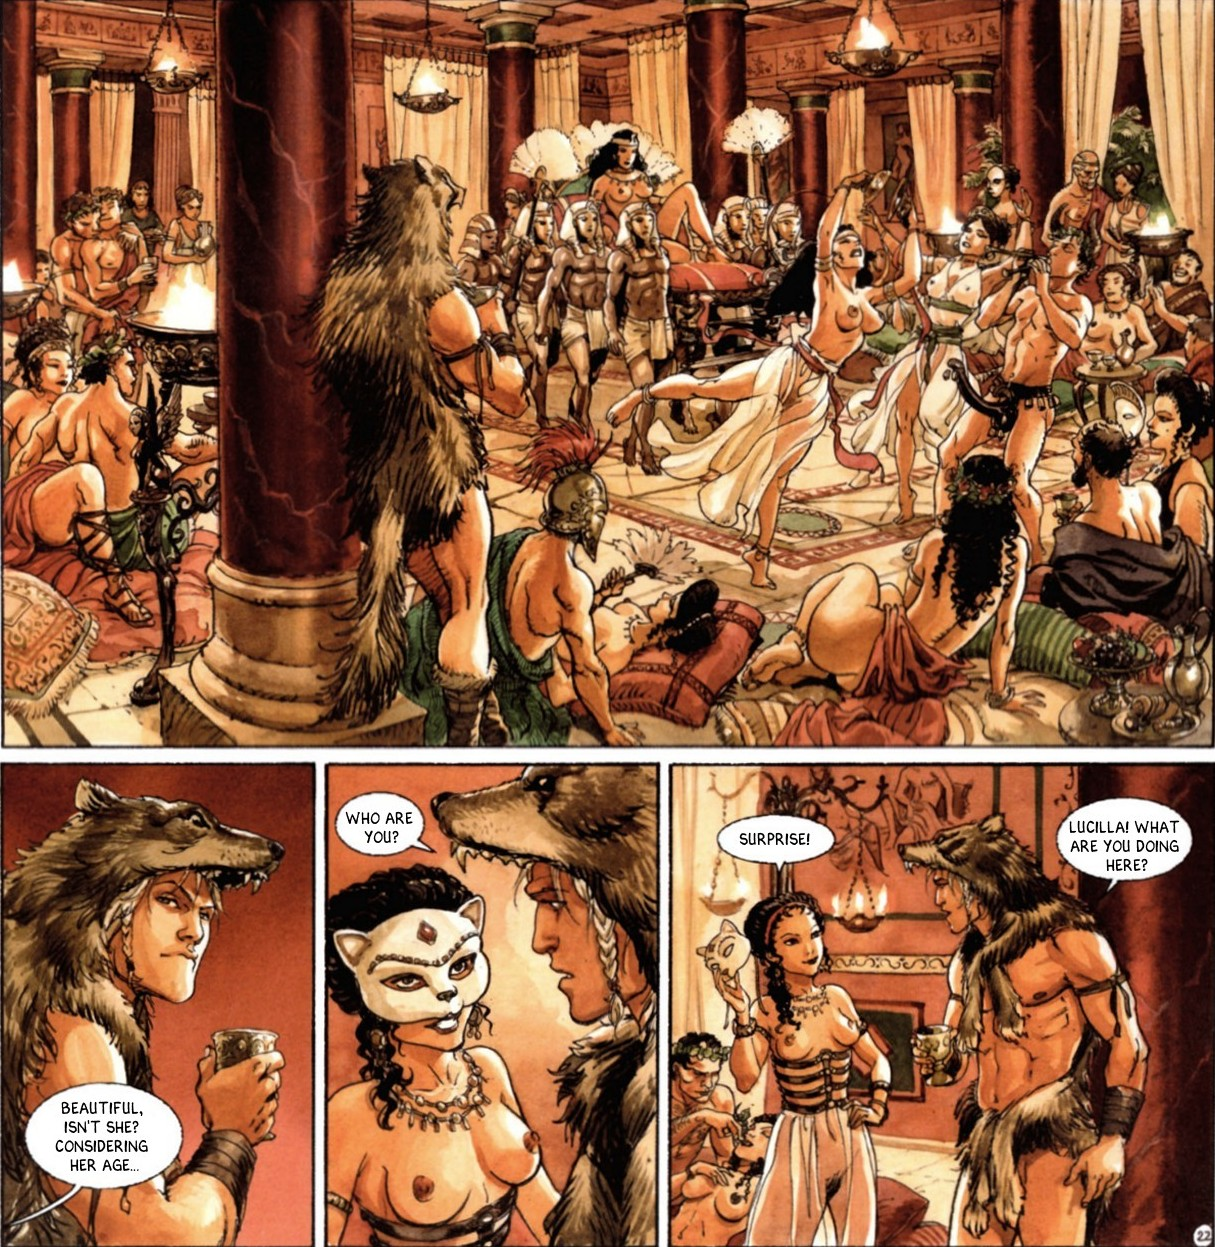 Illustration comics roman orgy